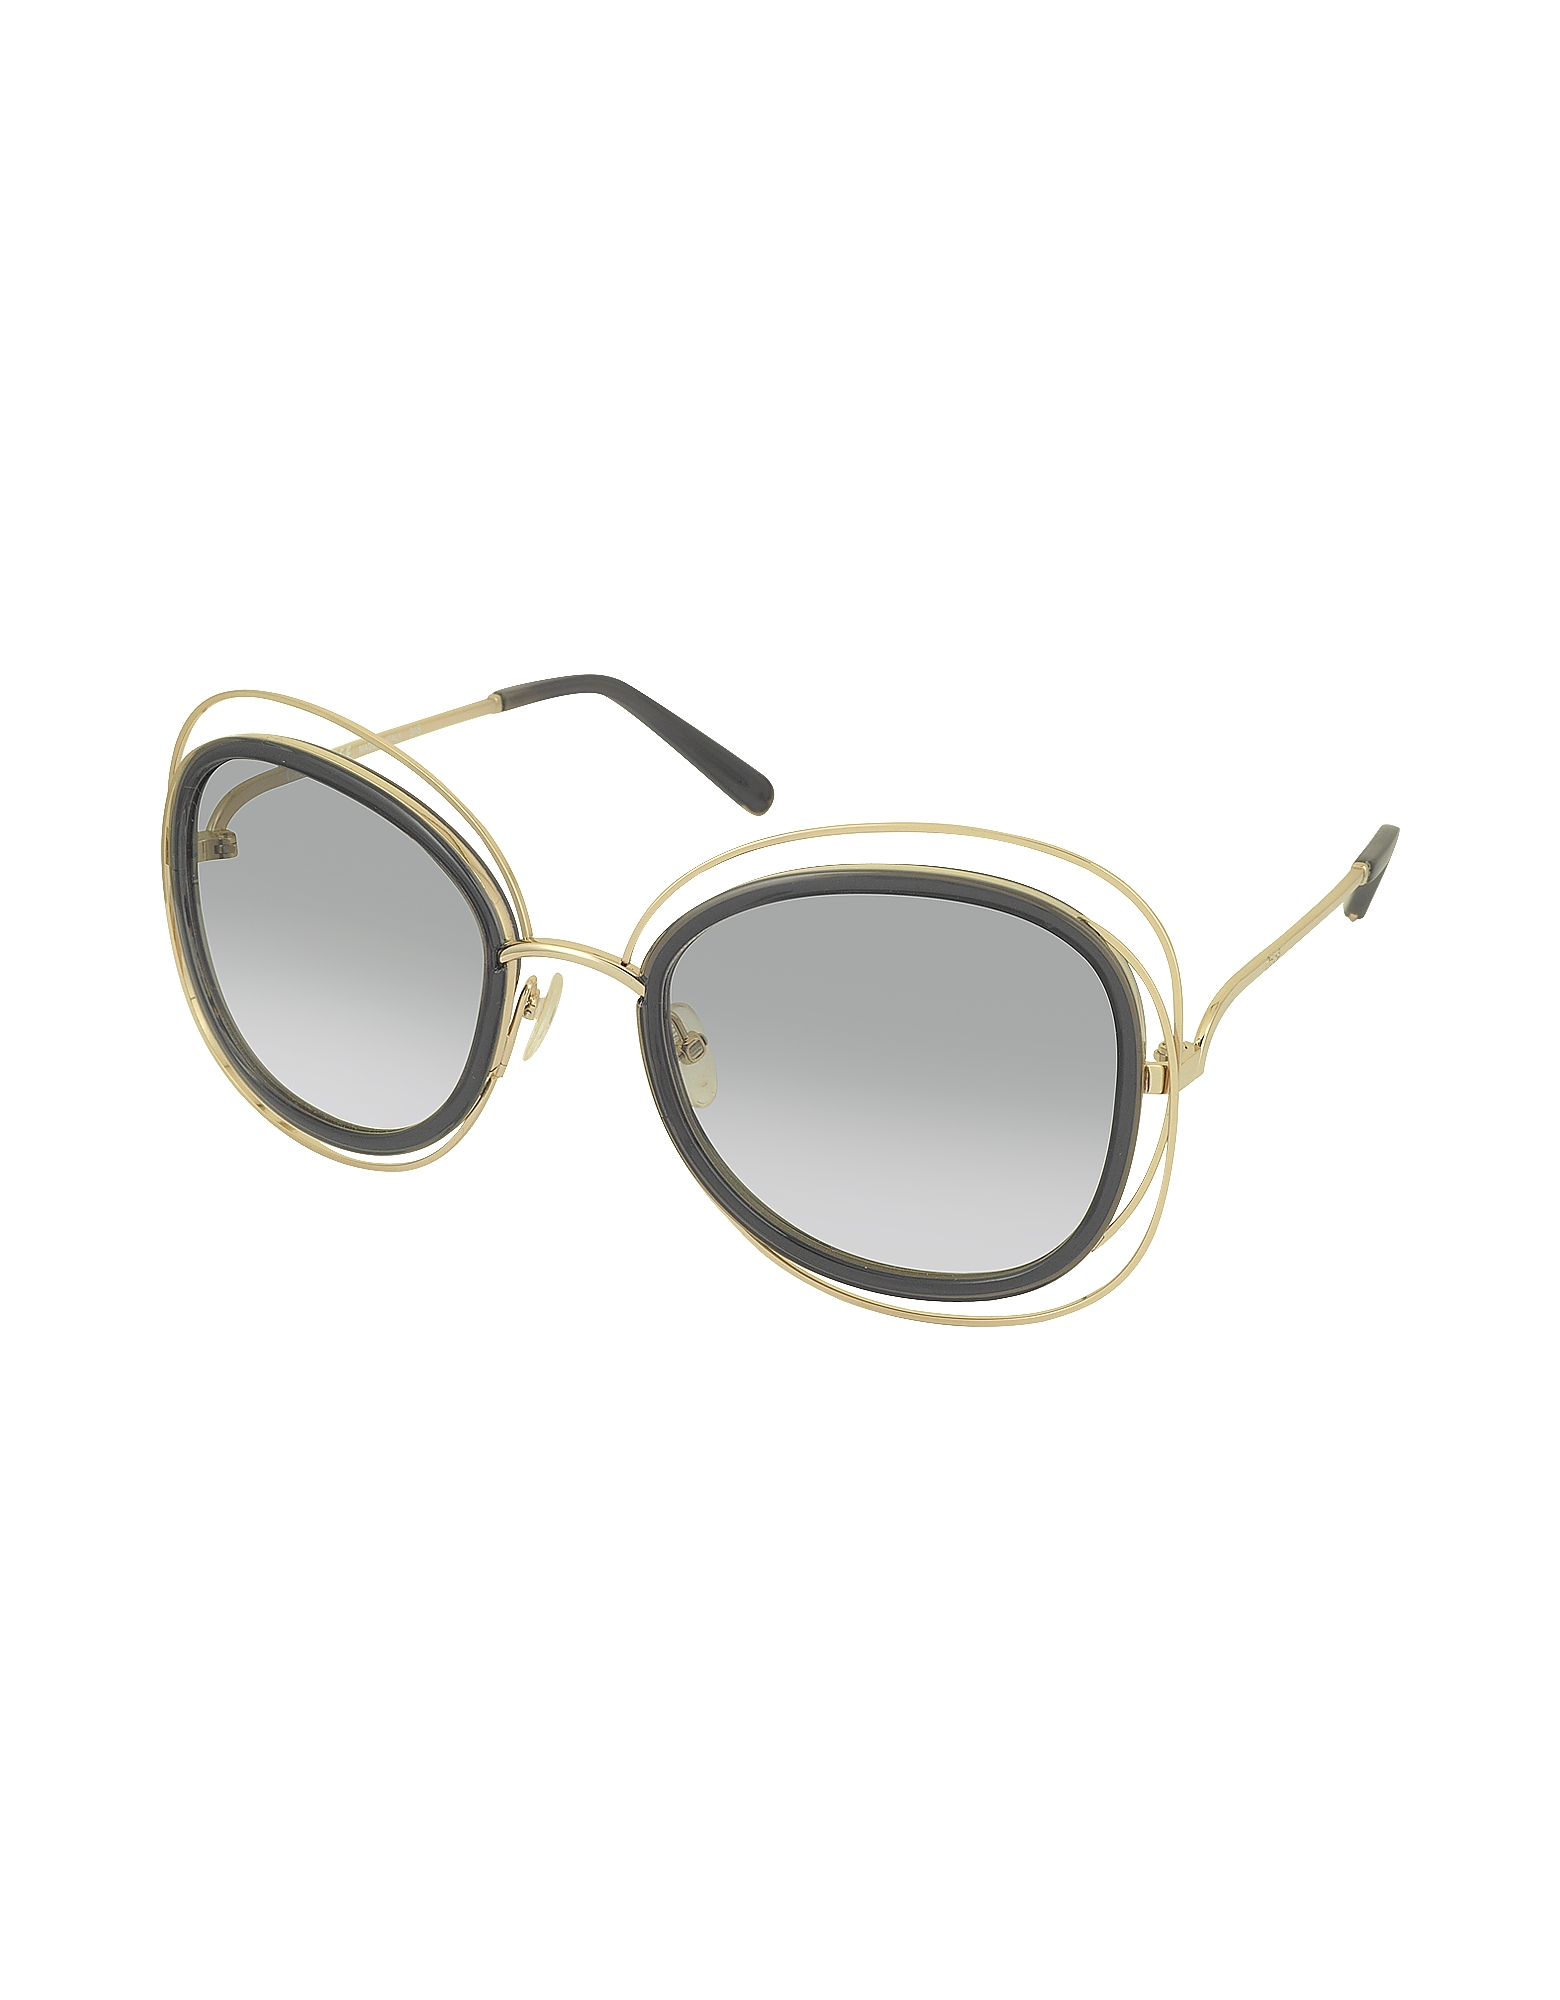 CARLINA CE 123S Square Oversized Acetate & Metal Women's Sunglasses от Forzieri.com INT